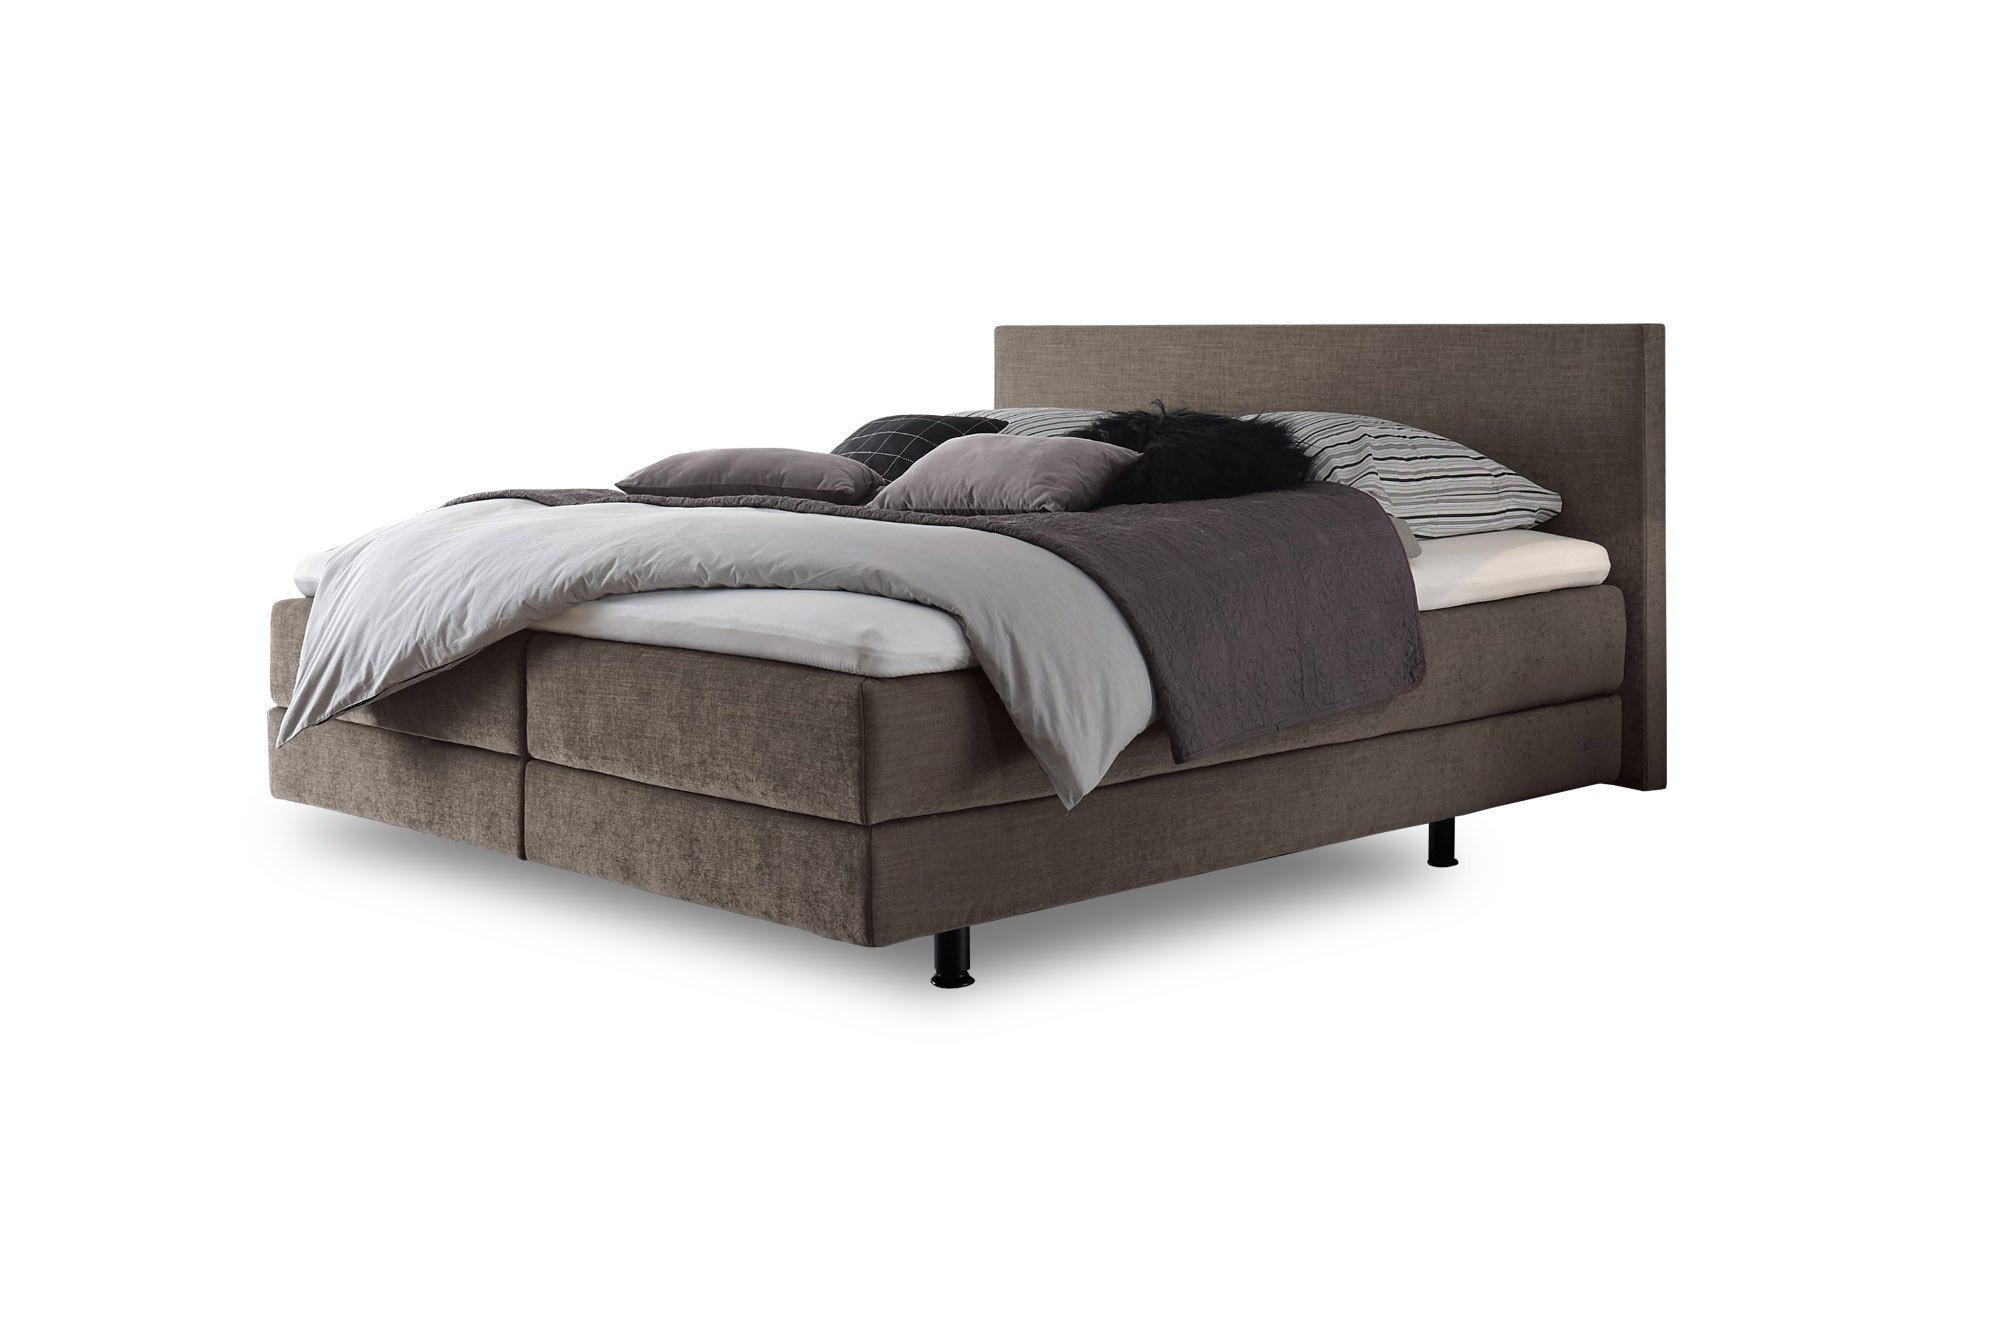 Hülsta Boxspringbett Bs 100 Light Brown Möbel Letz Ihr Online Shop